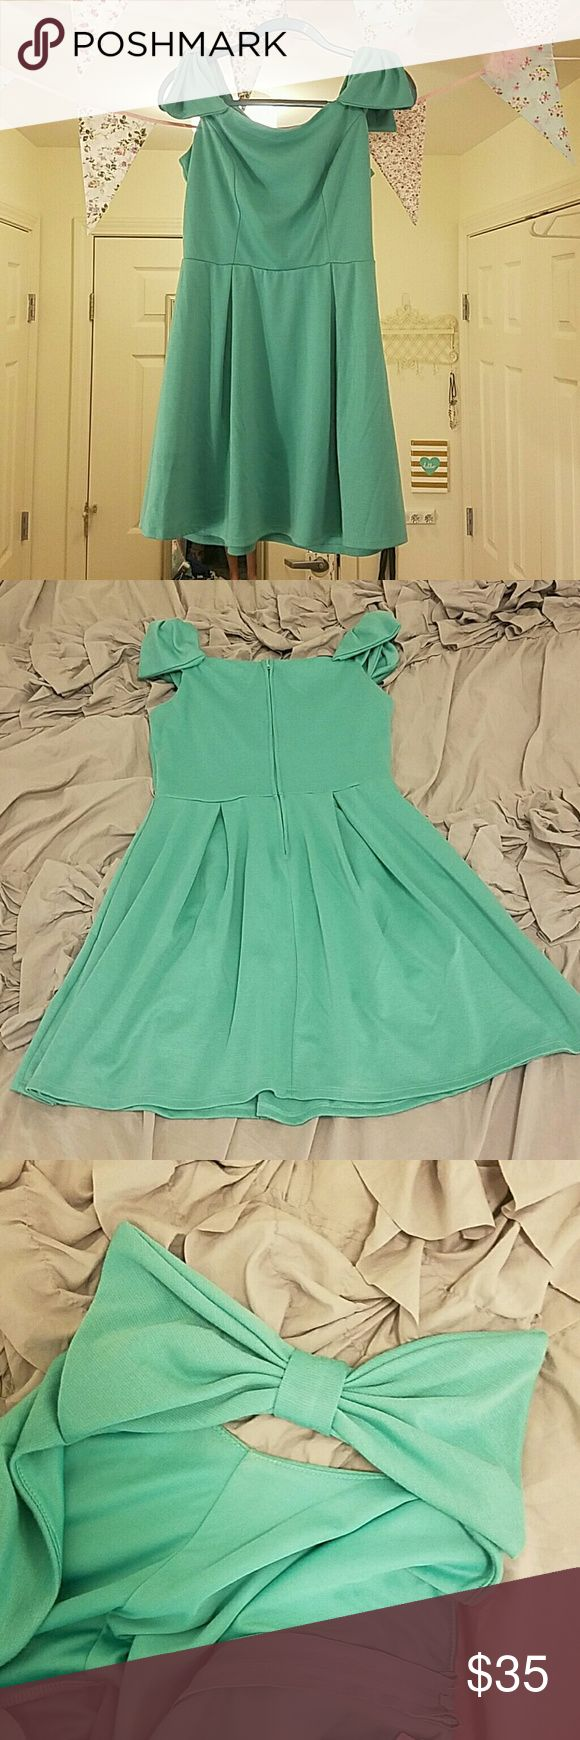 Adorable teal/green dress with bows on shoulders Super sweet teal fit and flare dress with bows on shoulders.  Very kate spade like style (note: not kate spade though). Pleats in front, zipper in back. Perfect for a festive St. Patrick's day outfit. Tag says large but fits an 8 with a 34D bra size well.  In excellent used condition and originally purchased from Francesca's.  Only possible flaw is a light area shown in last picture but I think this is just part for the heathered fabric. kate…